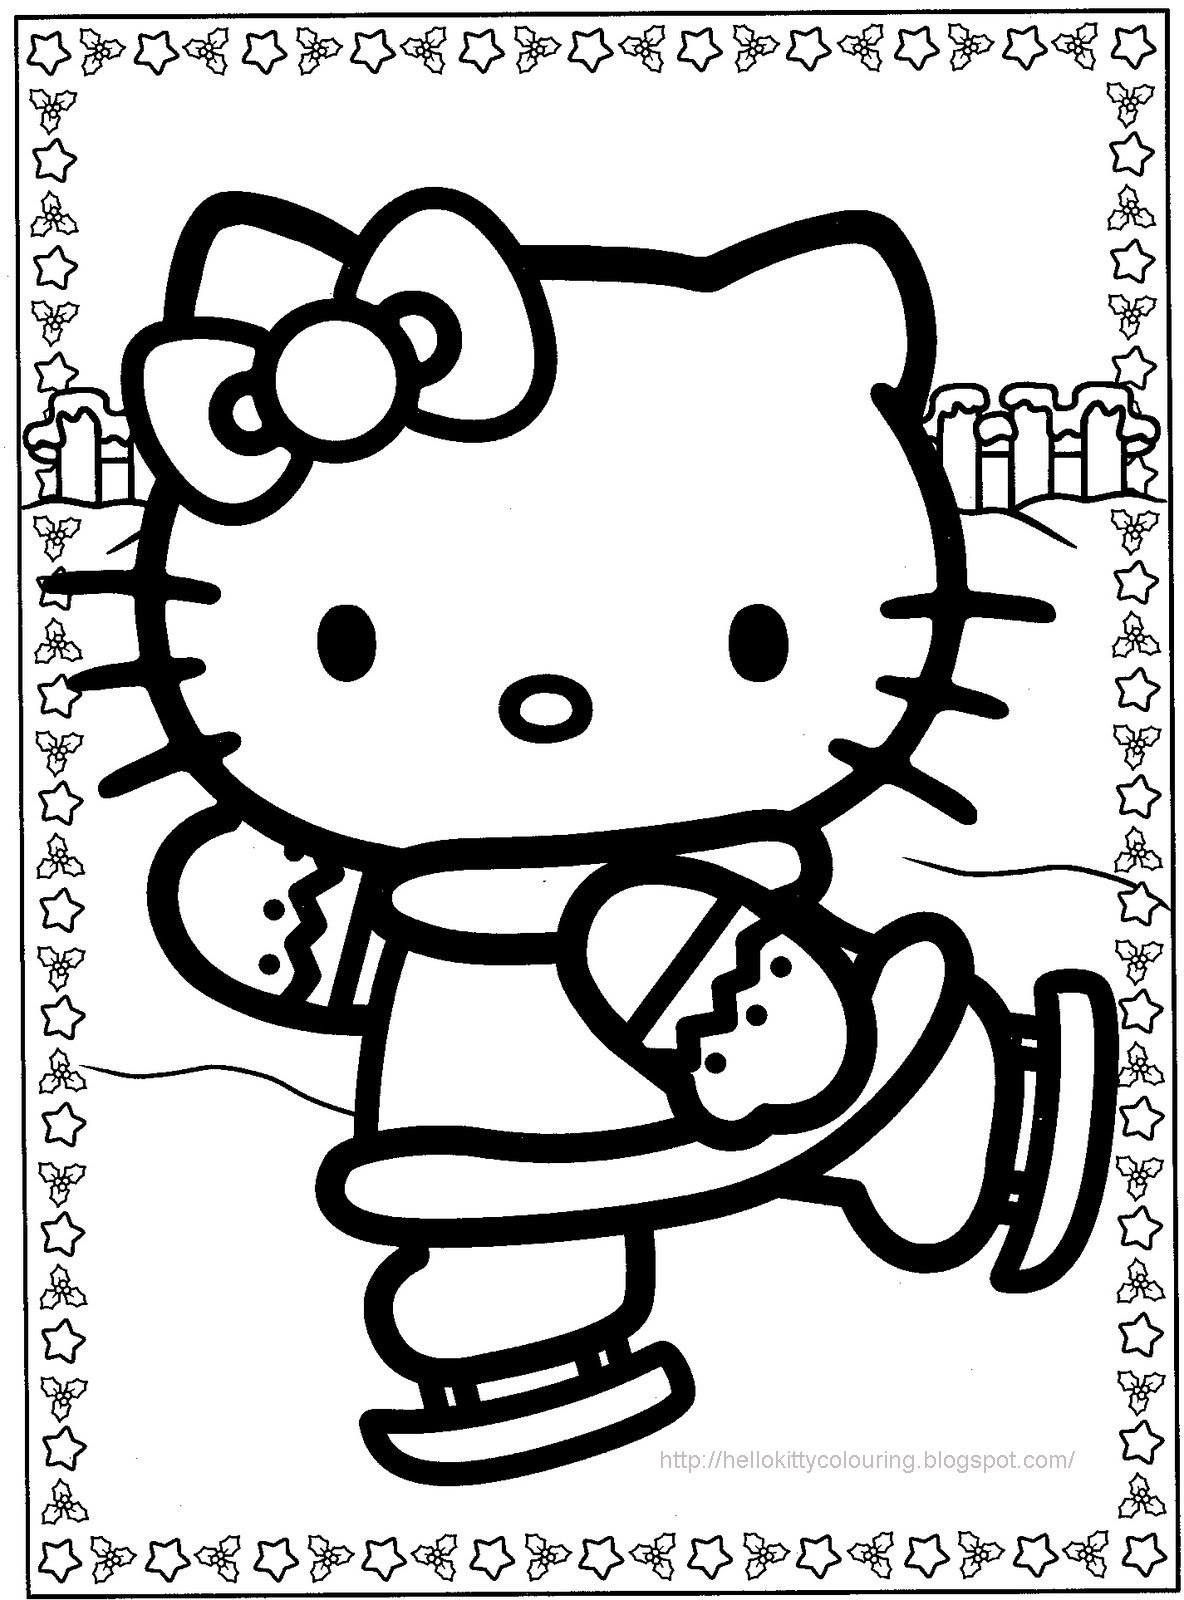 hello kitty christmas colouring pages hello kitty christmas coloring pages 1 hello kitty forever colouring pages christmas kitty hello